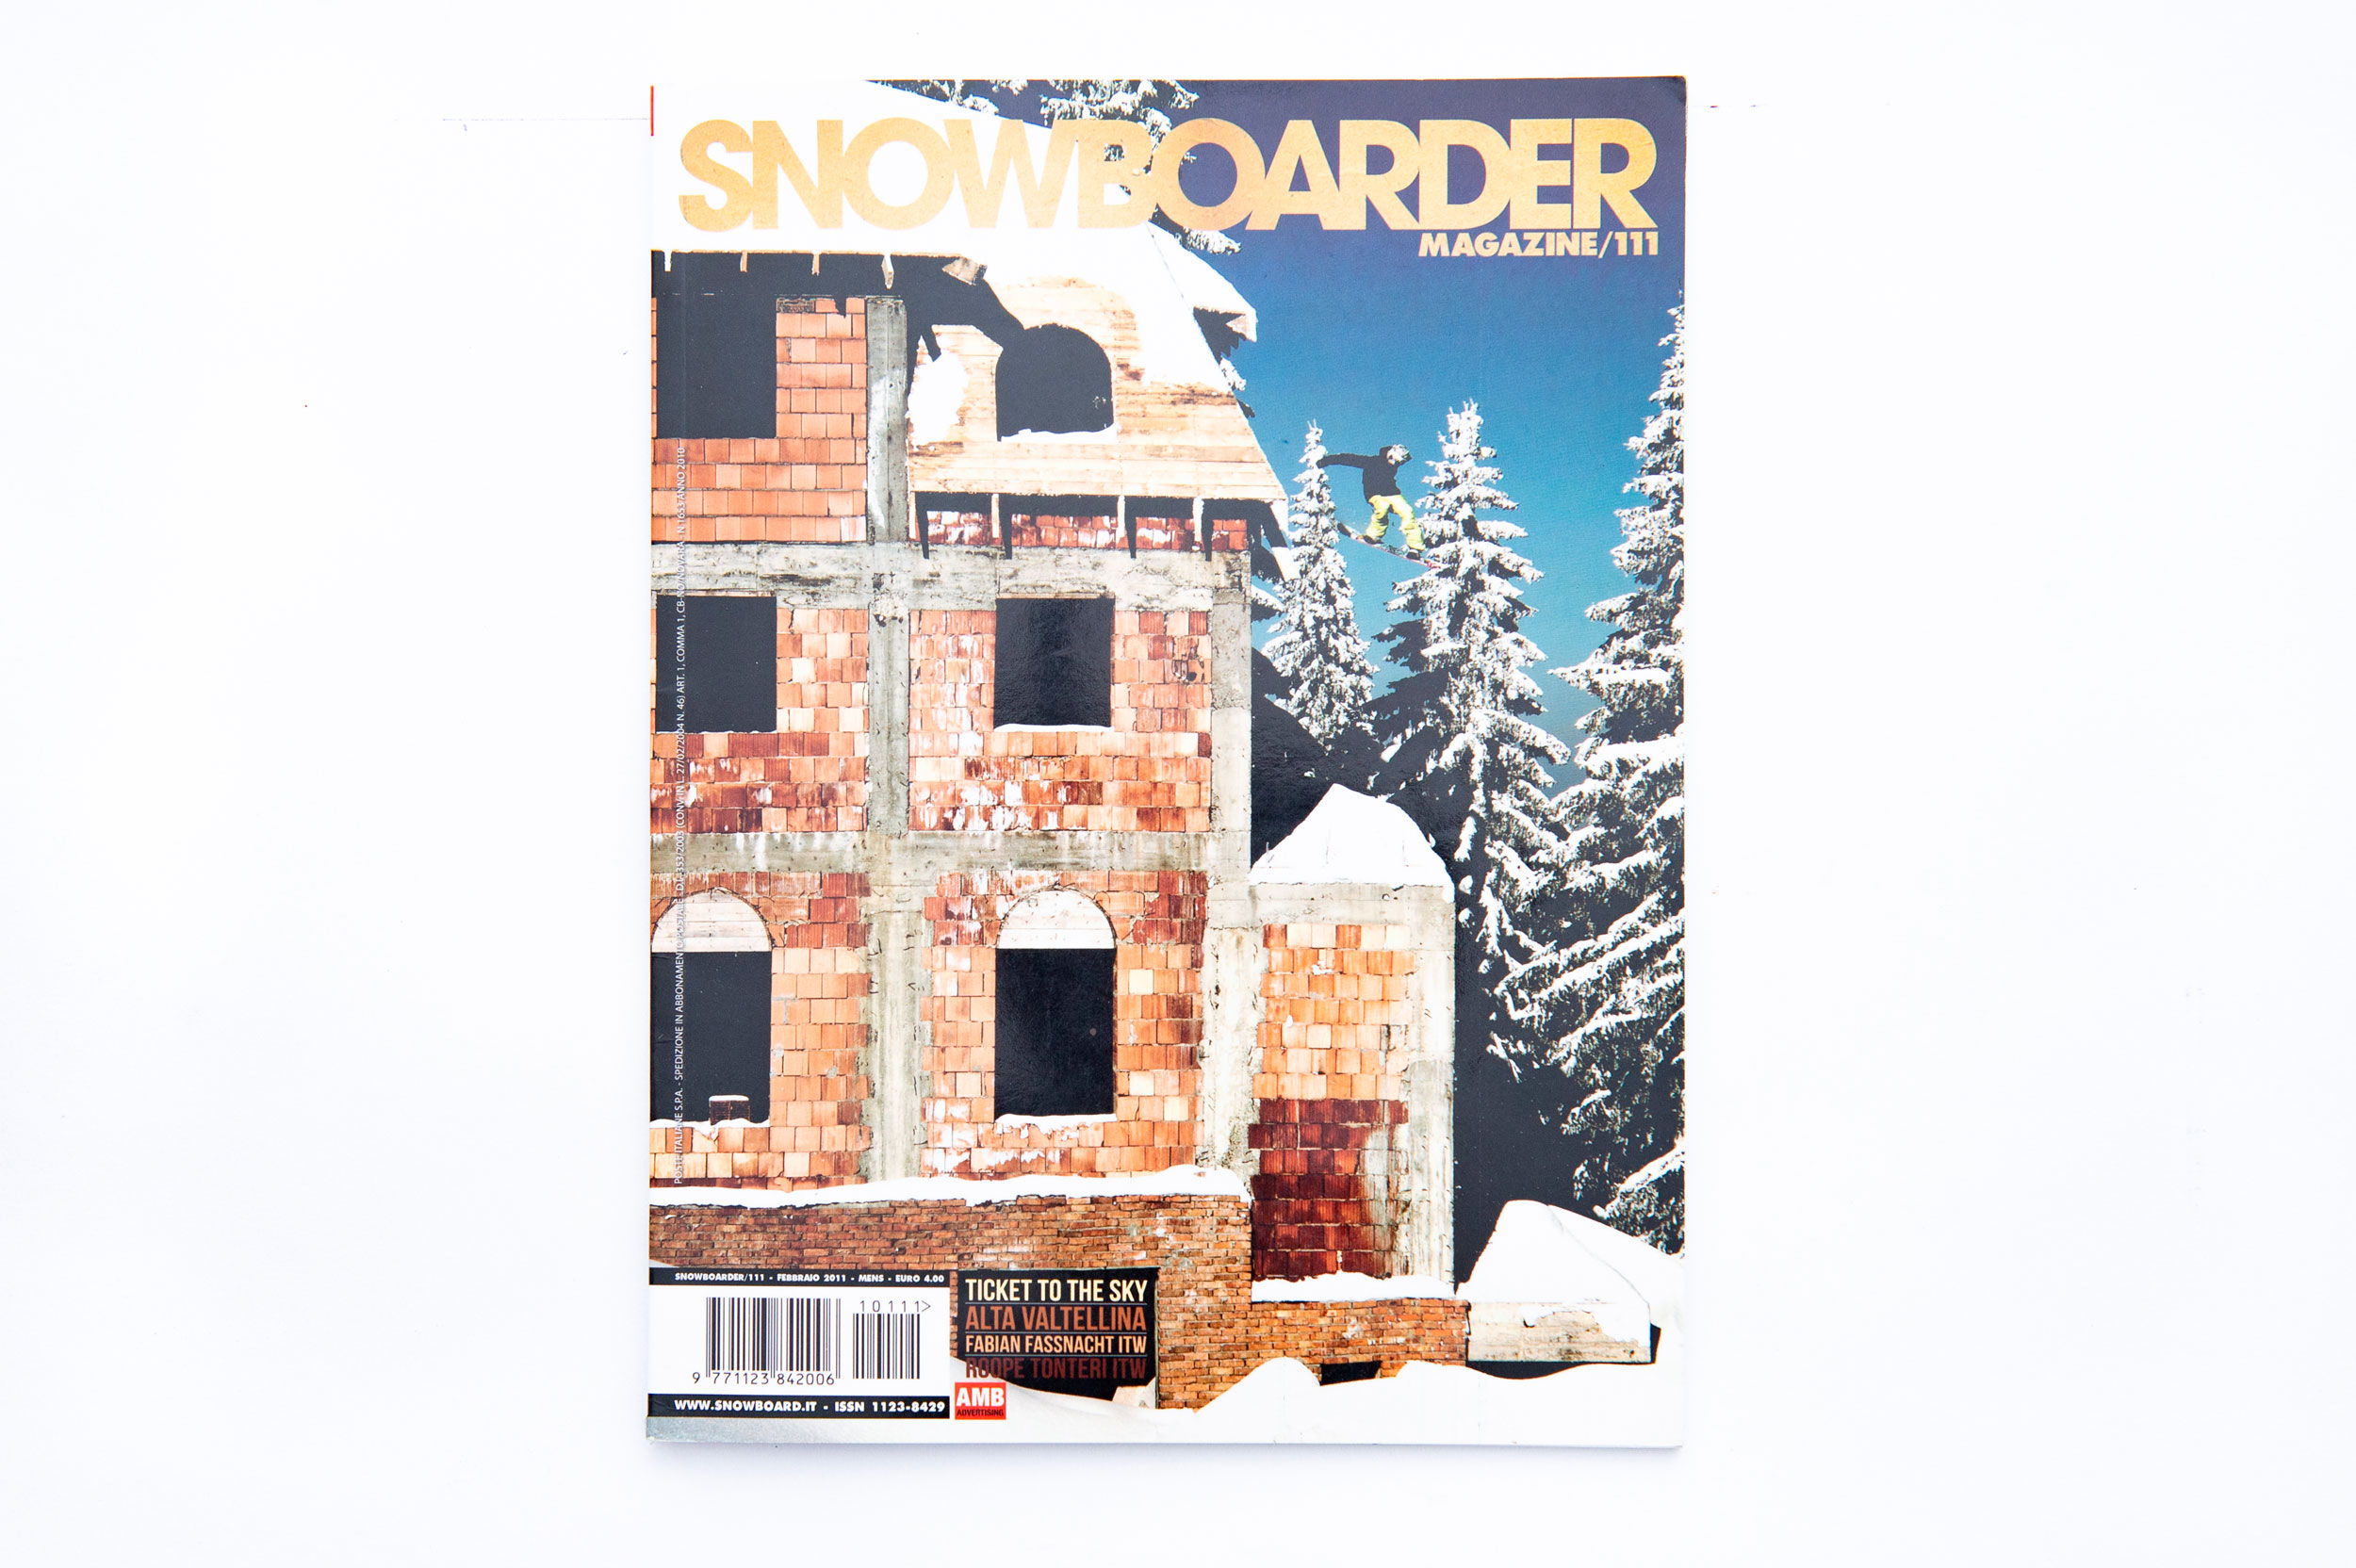 Fabian Fassnacht, Snowboard Magazine, Referenze, Editorial, Cover